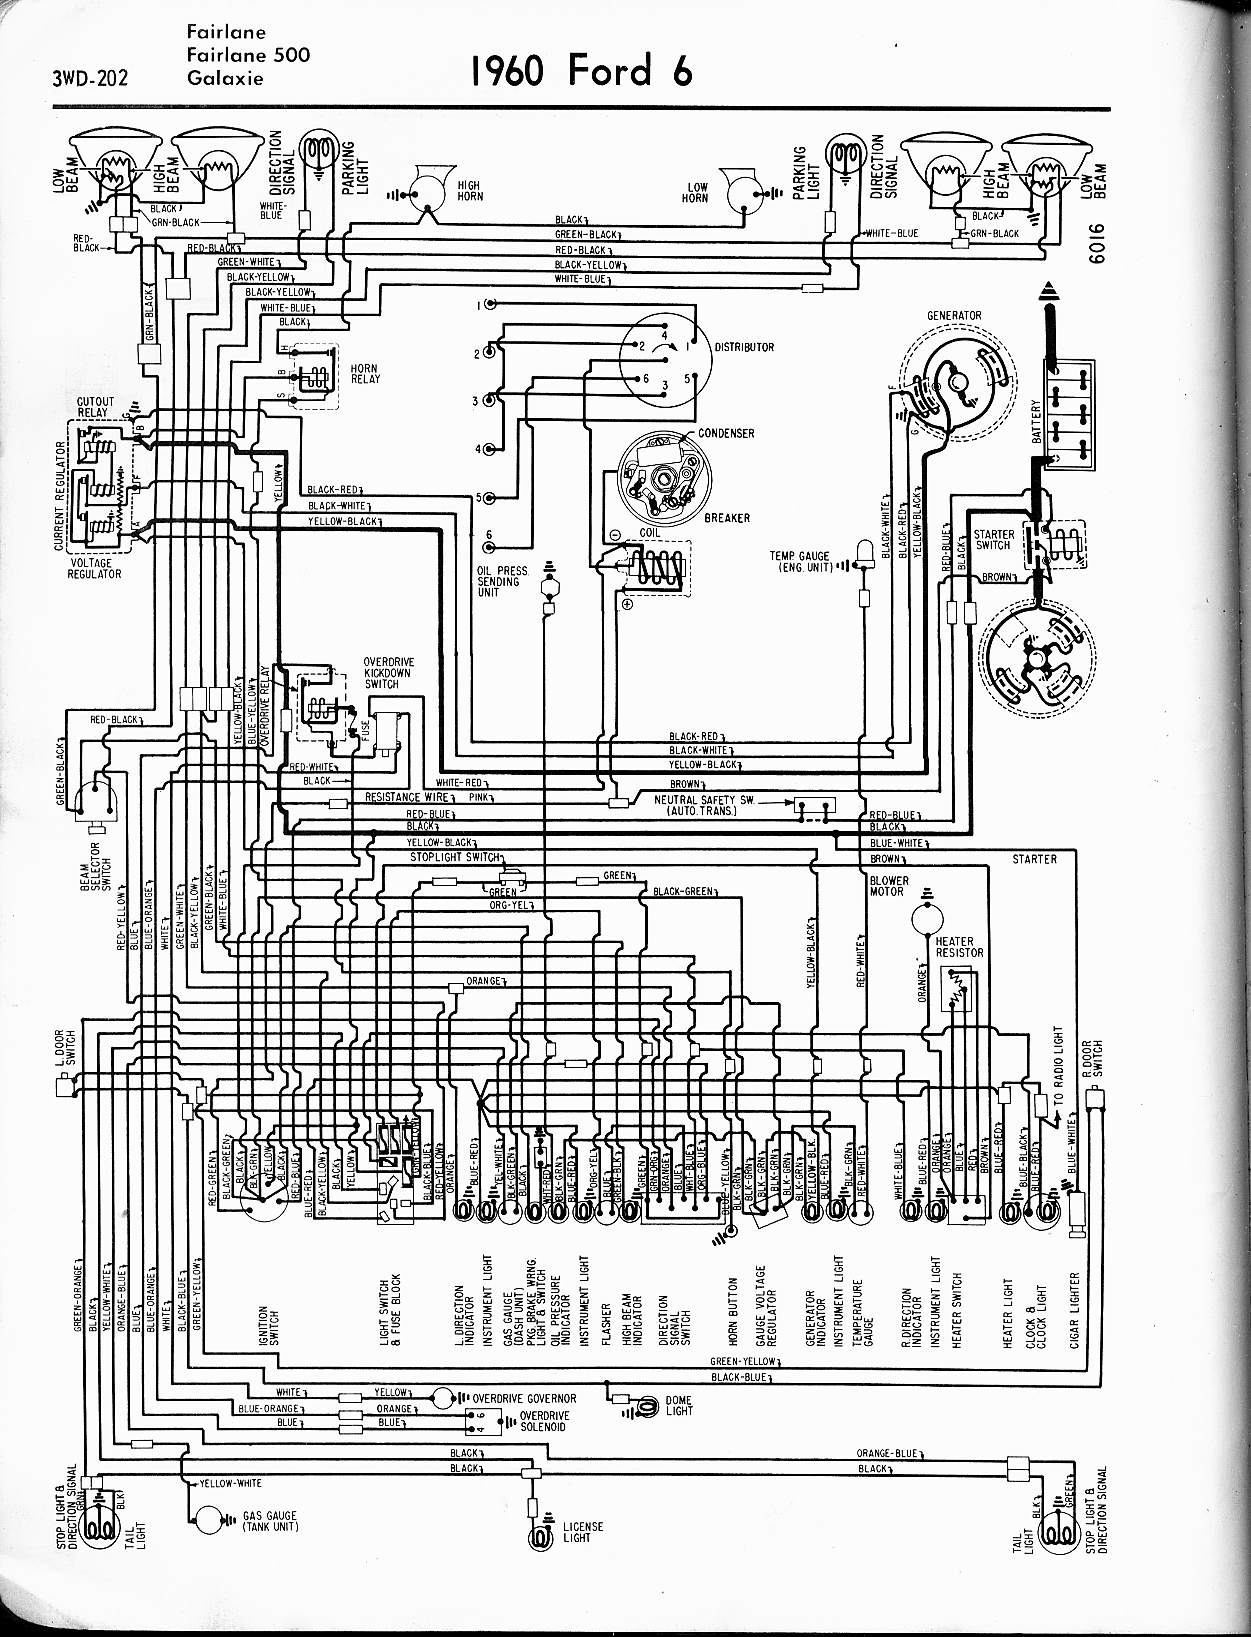 69 Fairlane Windshield Wiper Wire Diagram Worksheet And Wiring 1969 Camaro Motor 57 65 Ford Diagrams Rh Oldcarmanualproject Com Chevy Window Parts